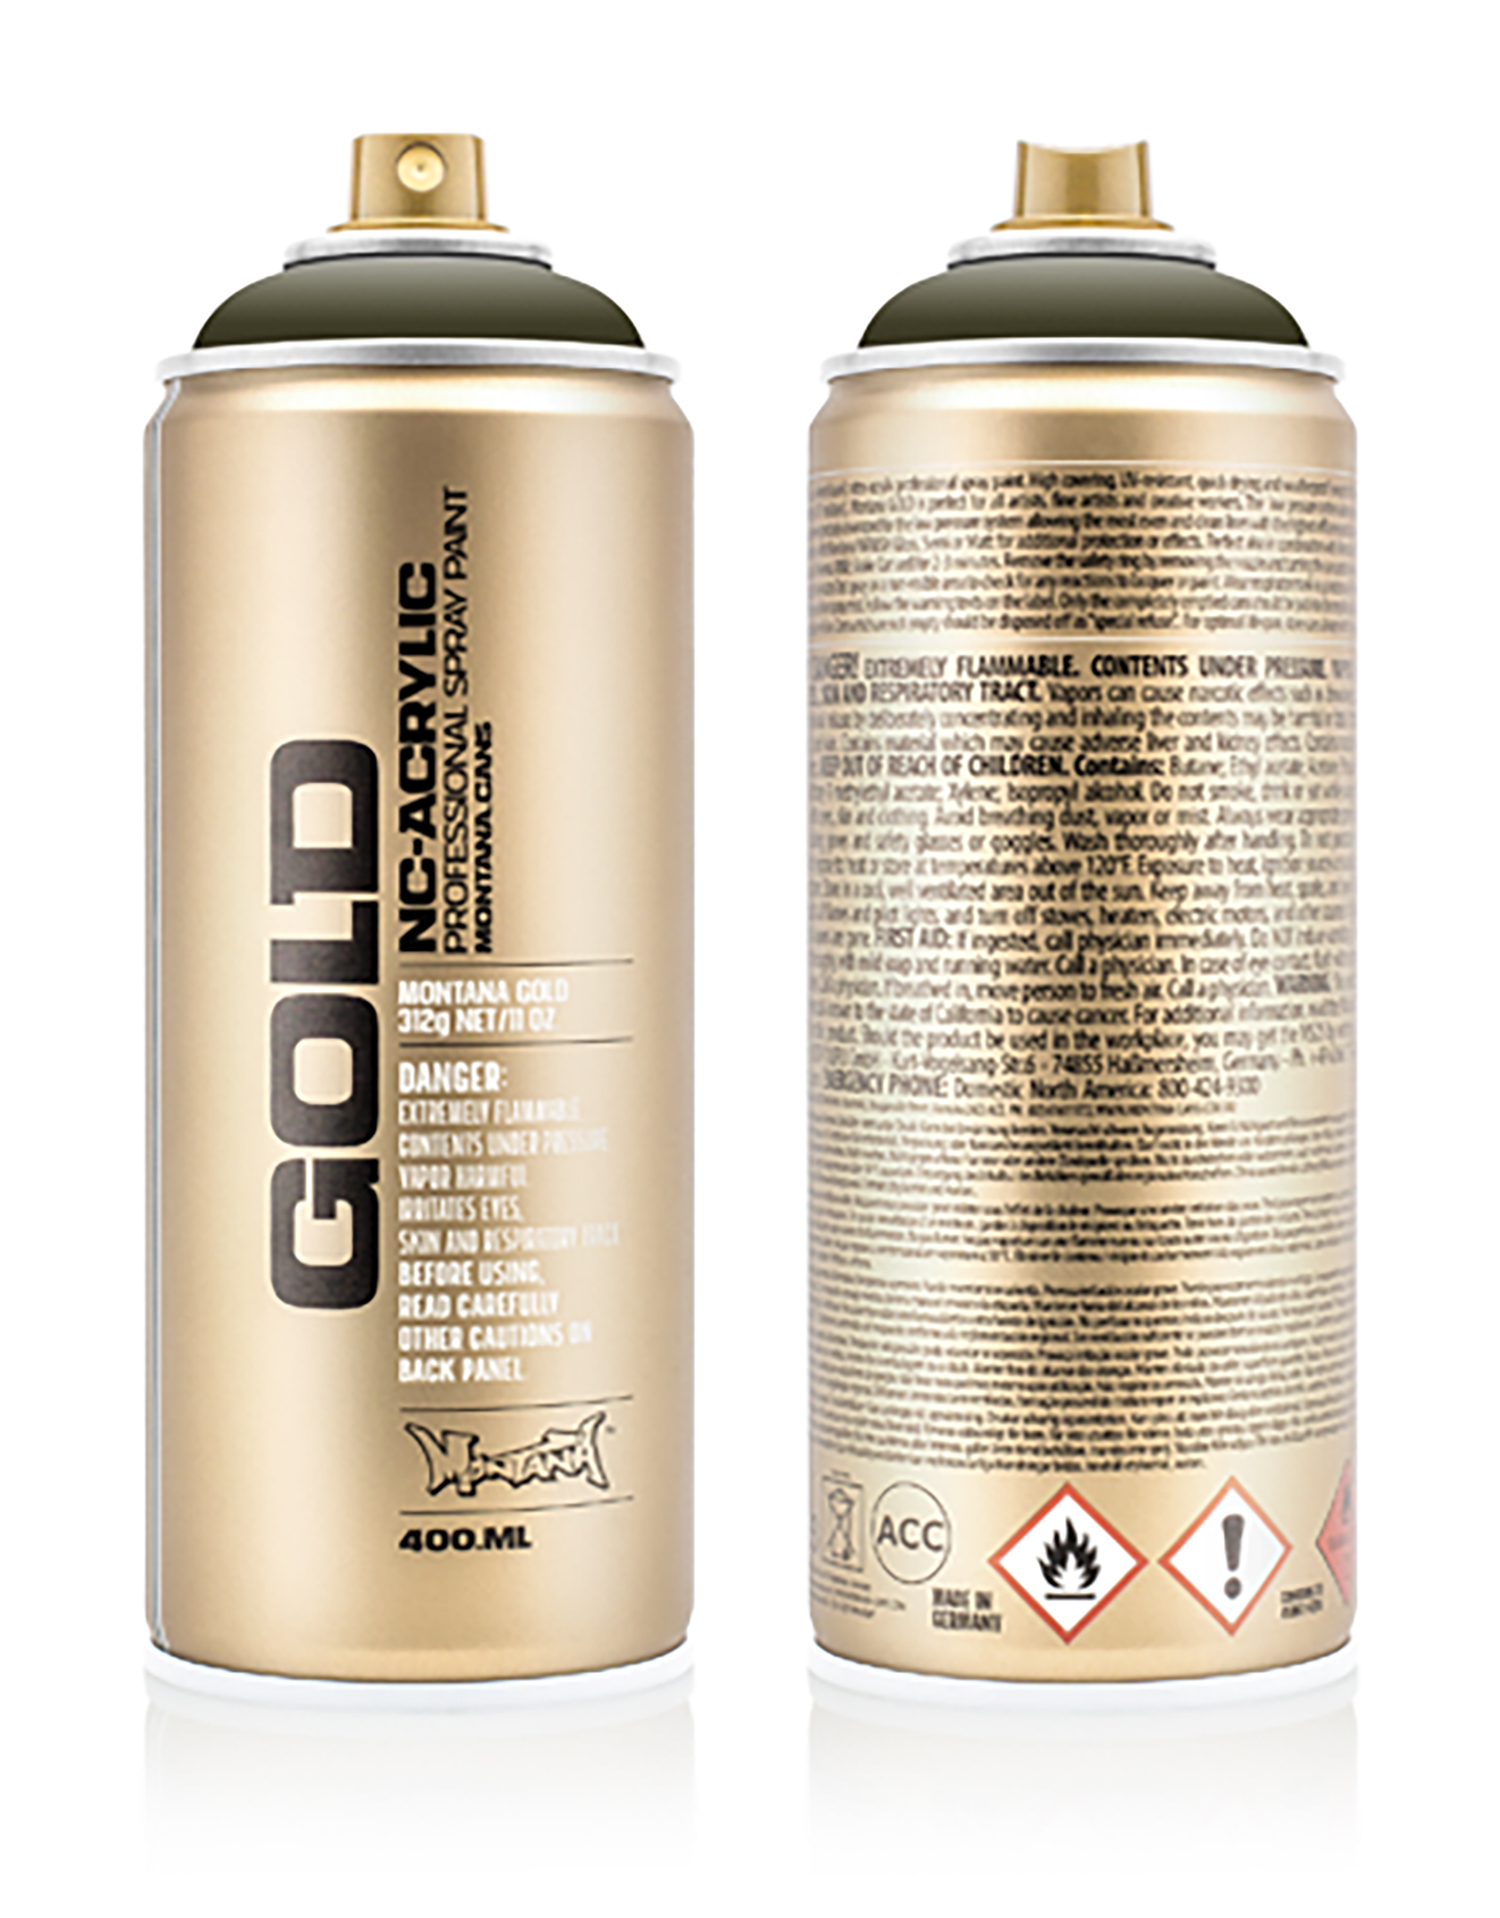 MONTANA-GOLD-SPRAY-400ML-G-1170